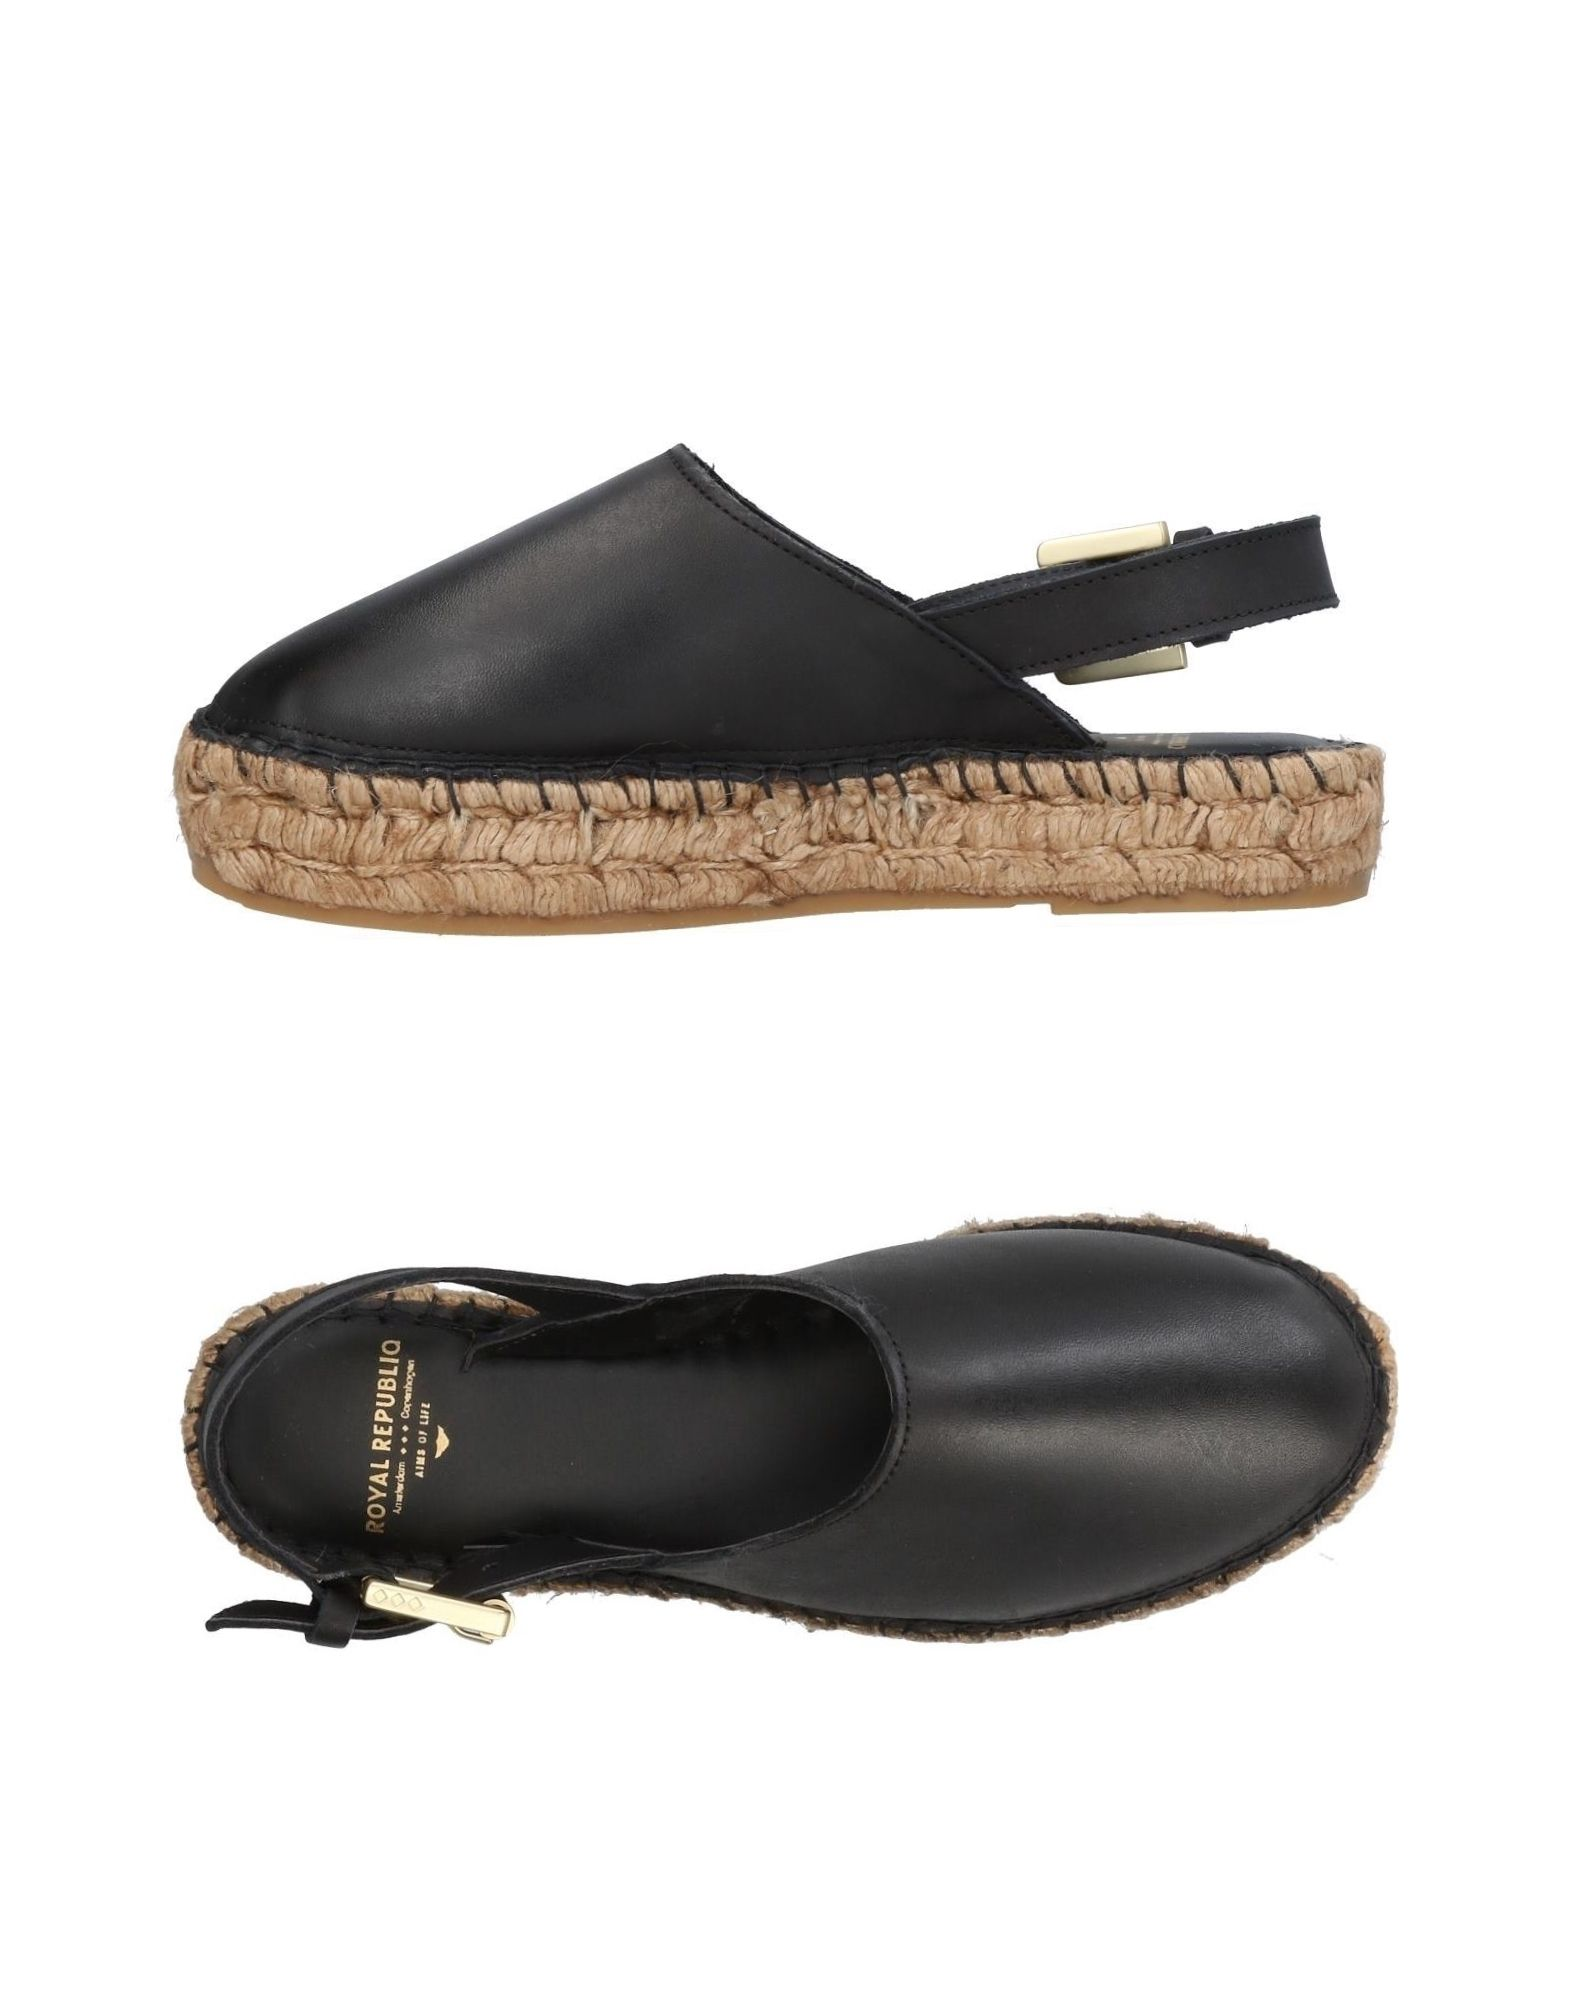 ROYAL REPUBLIQ Espadrilles in Black